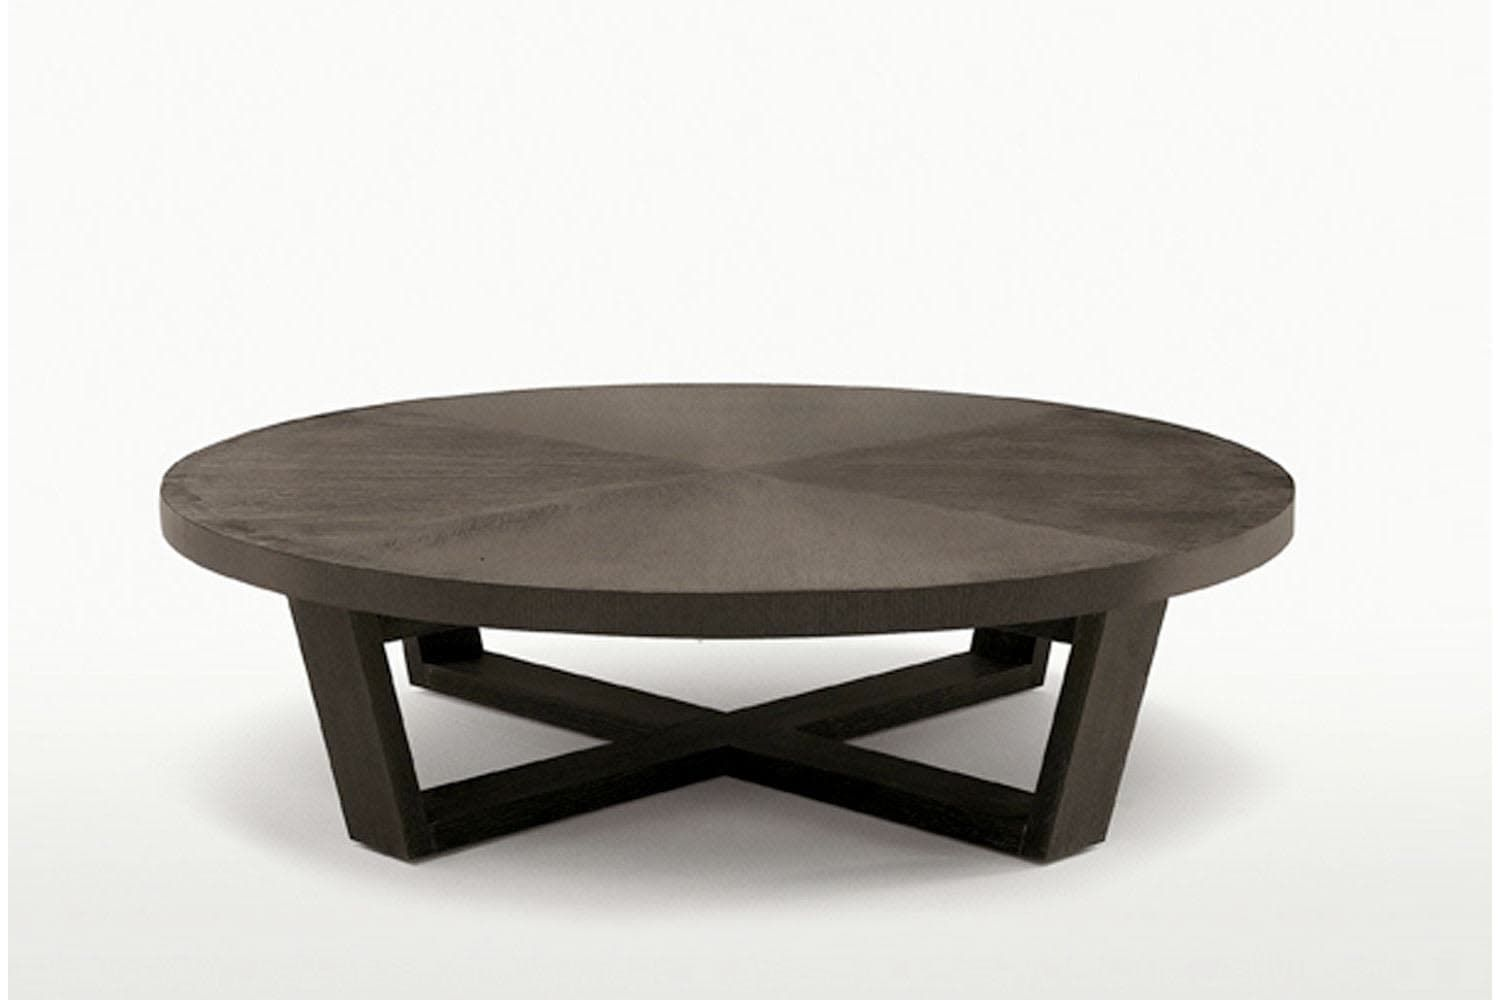 Xilos Small Table By Antonio Citterio For Maxalto Small Tables Coffee Table Furniture Table [ 1000 x 1500 Pixel ]